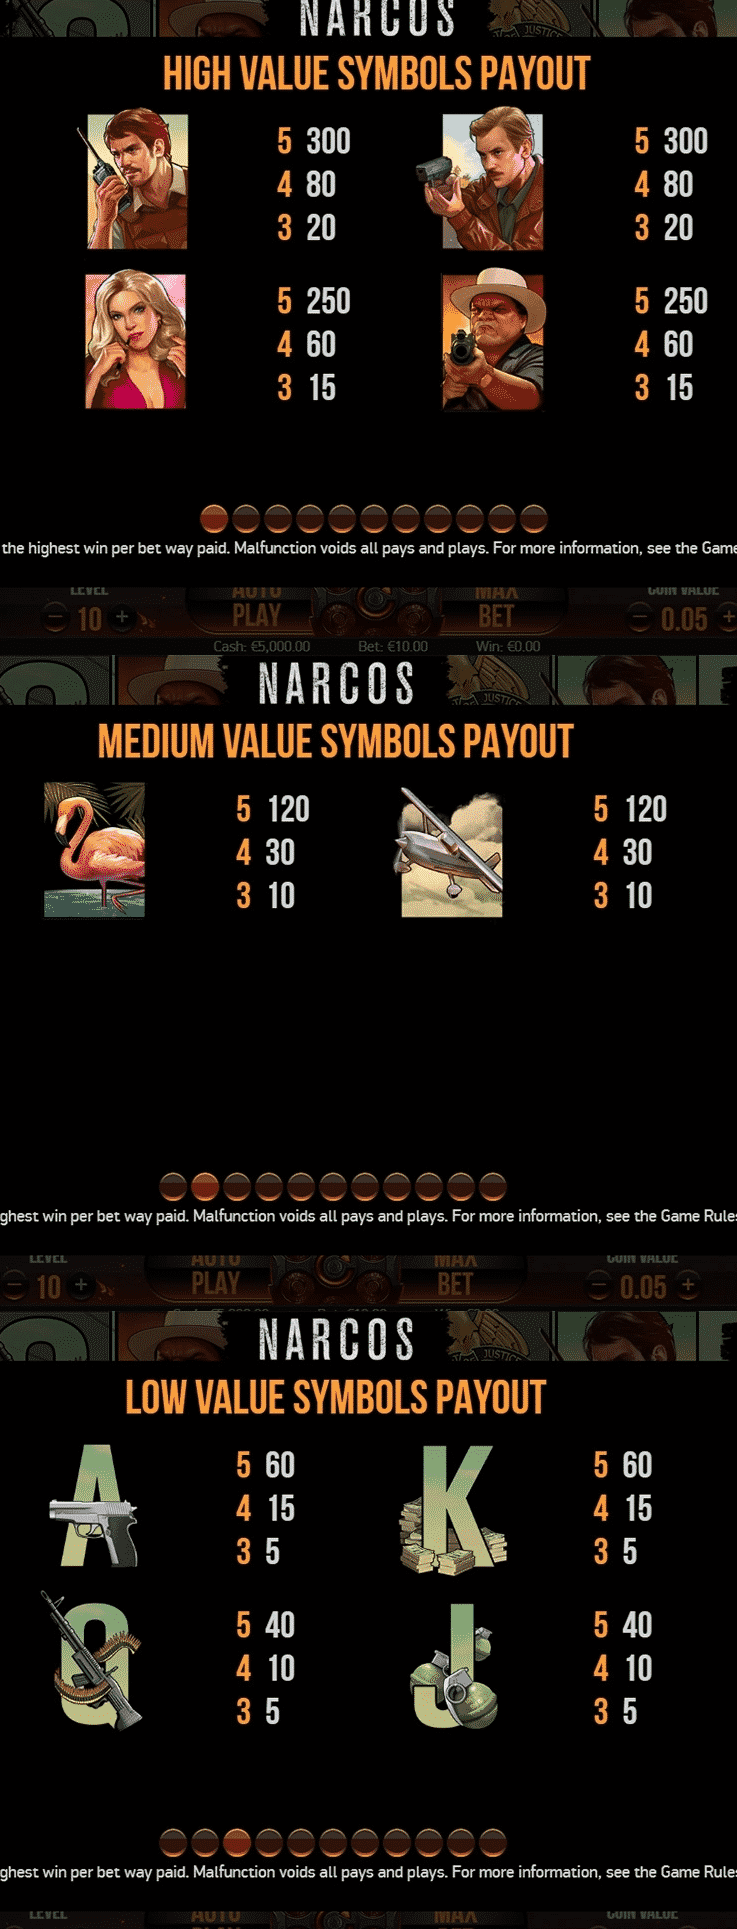 This is the paytable of the video slot Narcos by Net Entertainment.